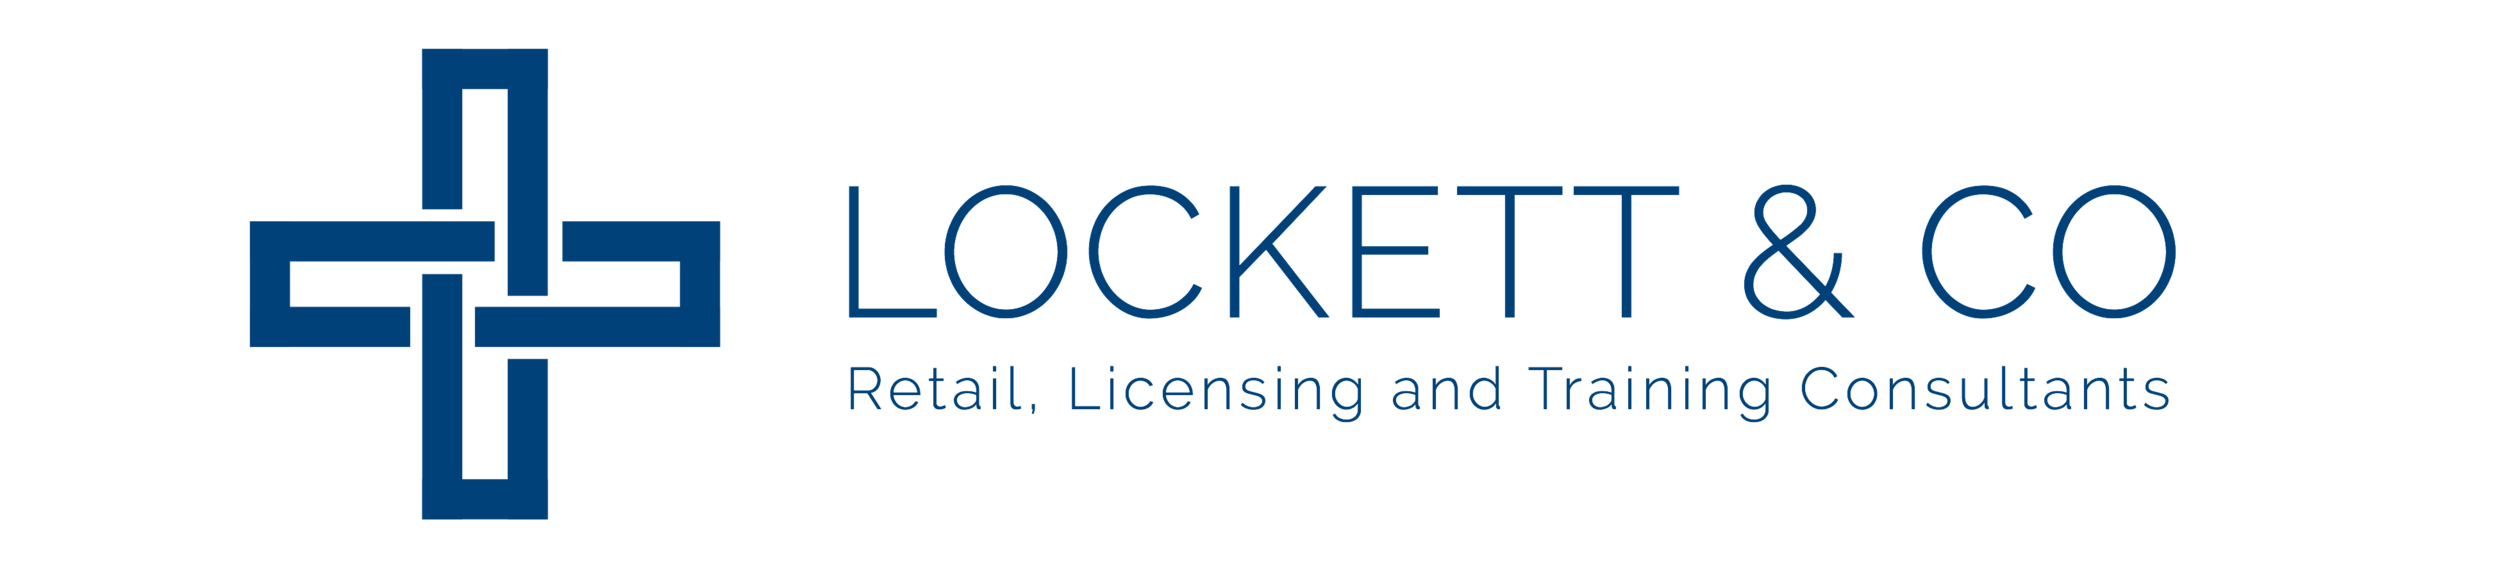 Lockett & Co Logo 2018.png